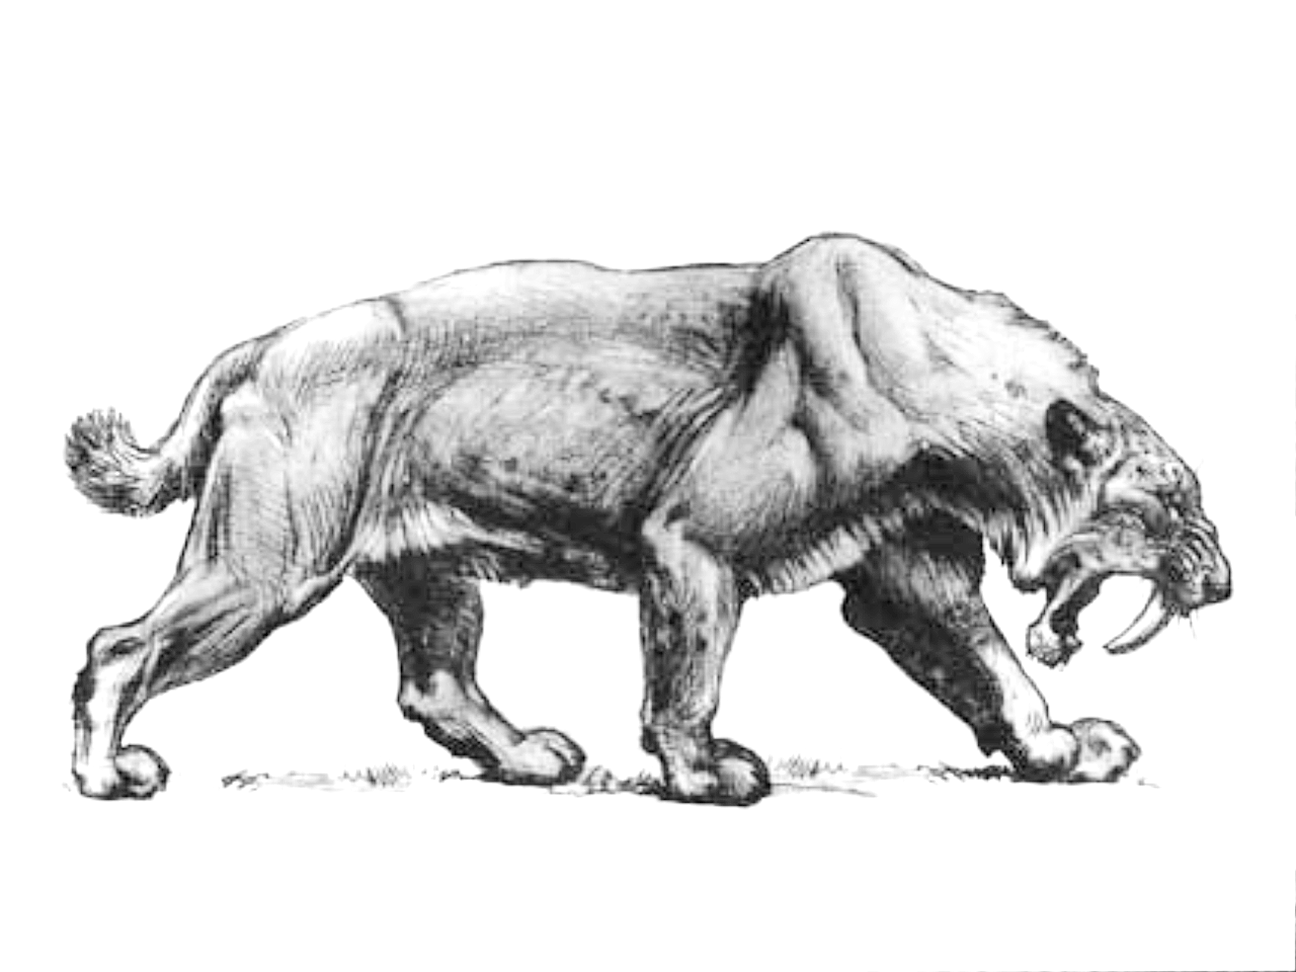 Smilodon Populator A Large And Burly Saber Tooth Cat Roamed South America Throughout The Pleistocene To Early Holocine Charles Smilodon Sabertooth Tiger Art